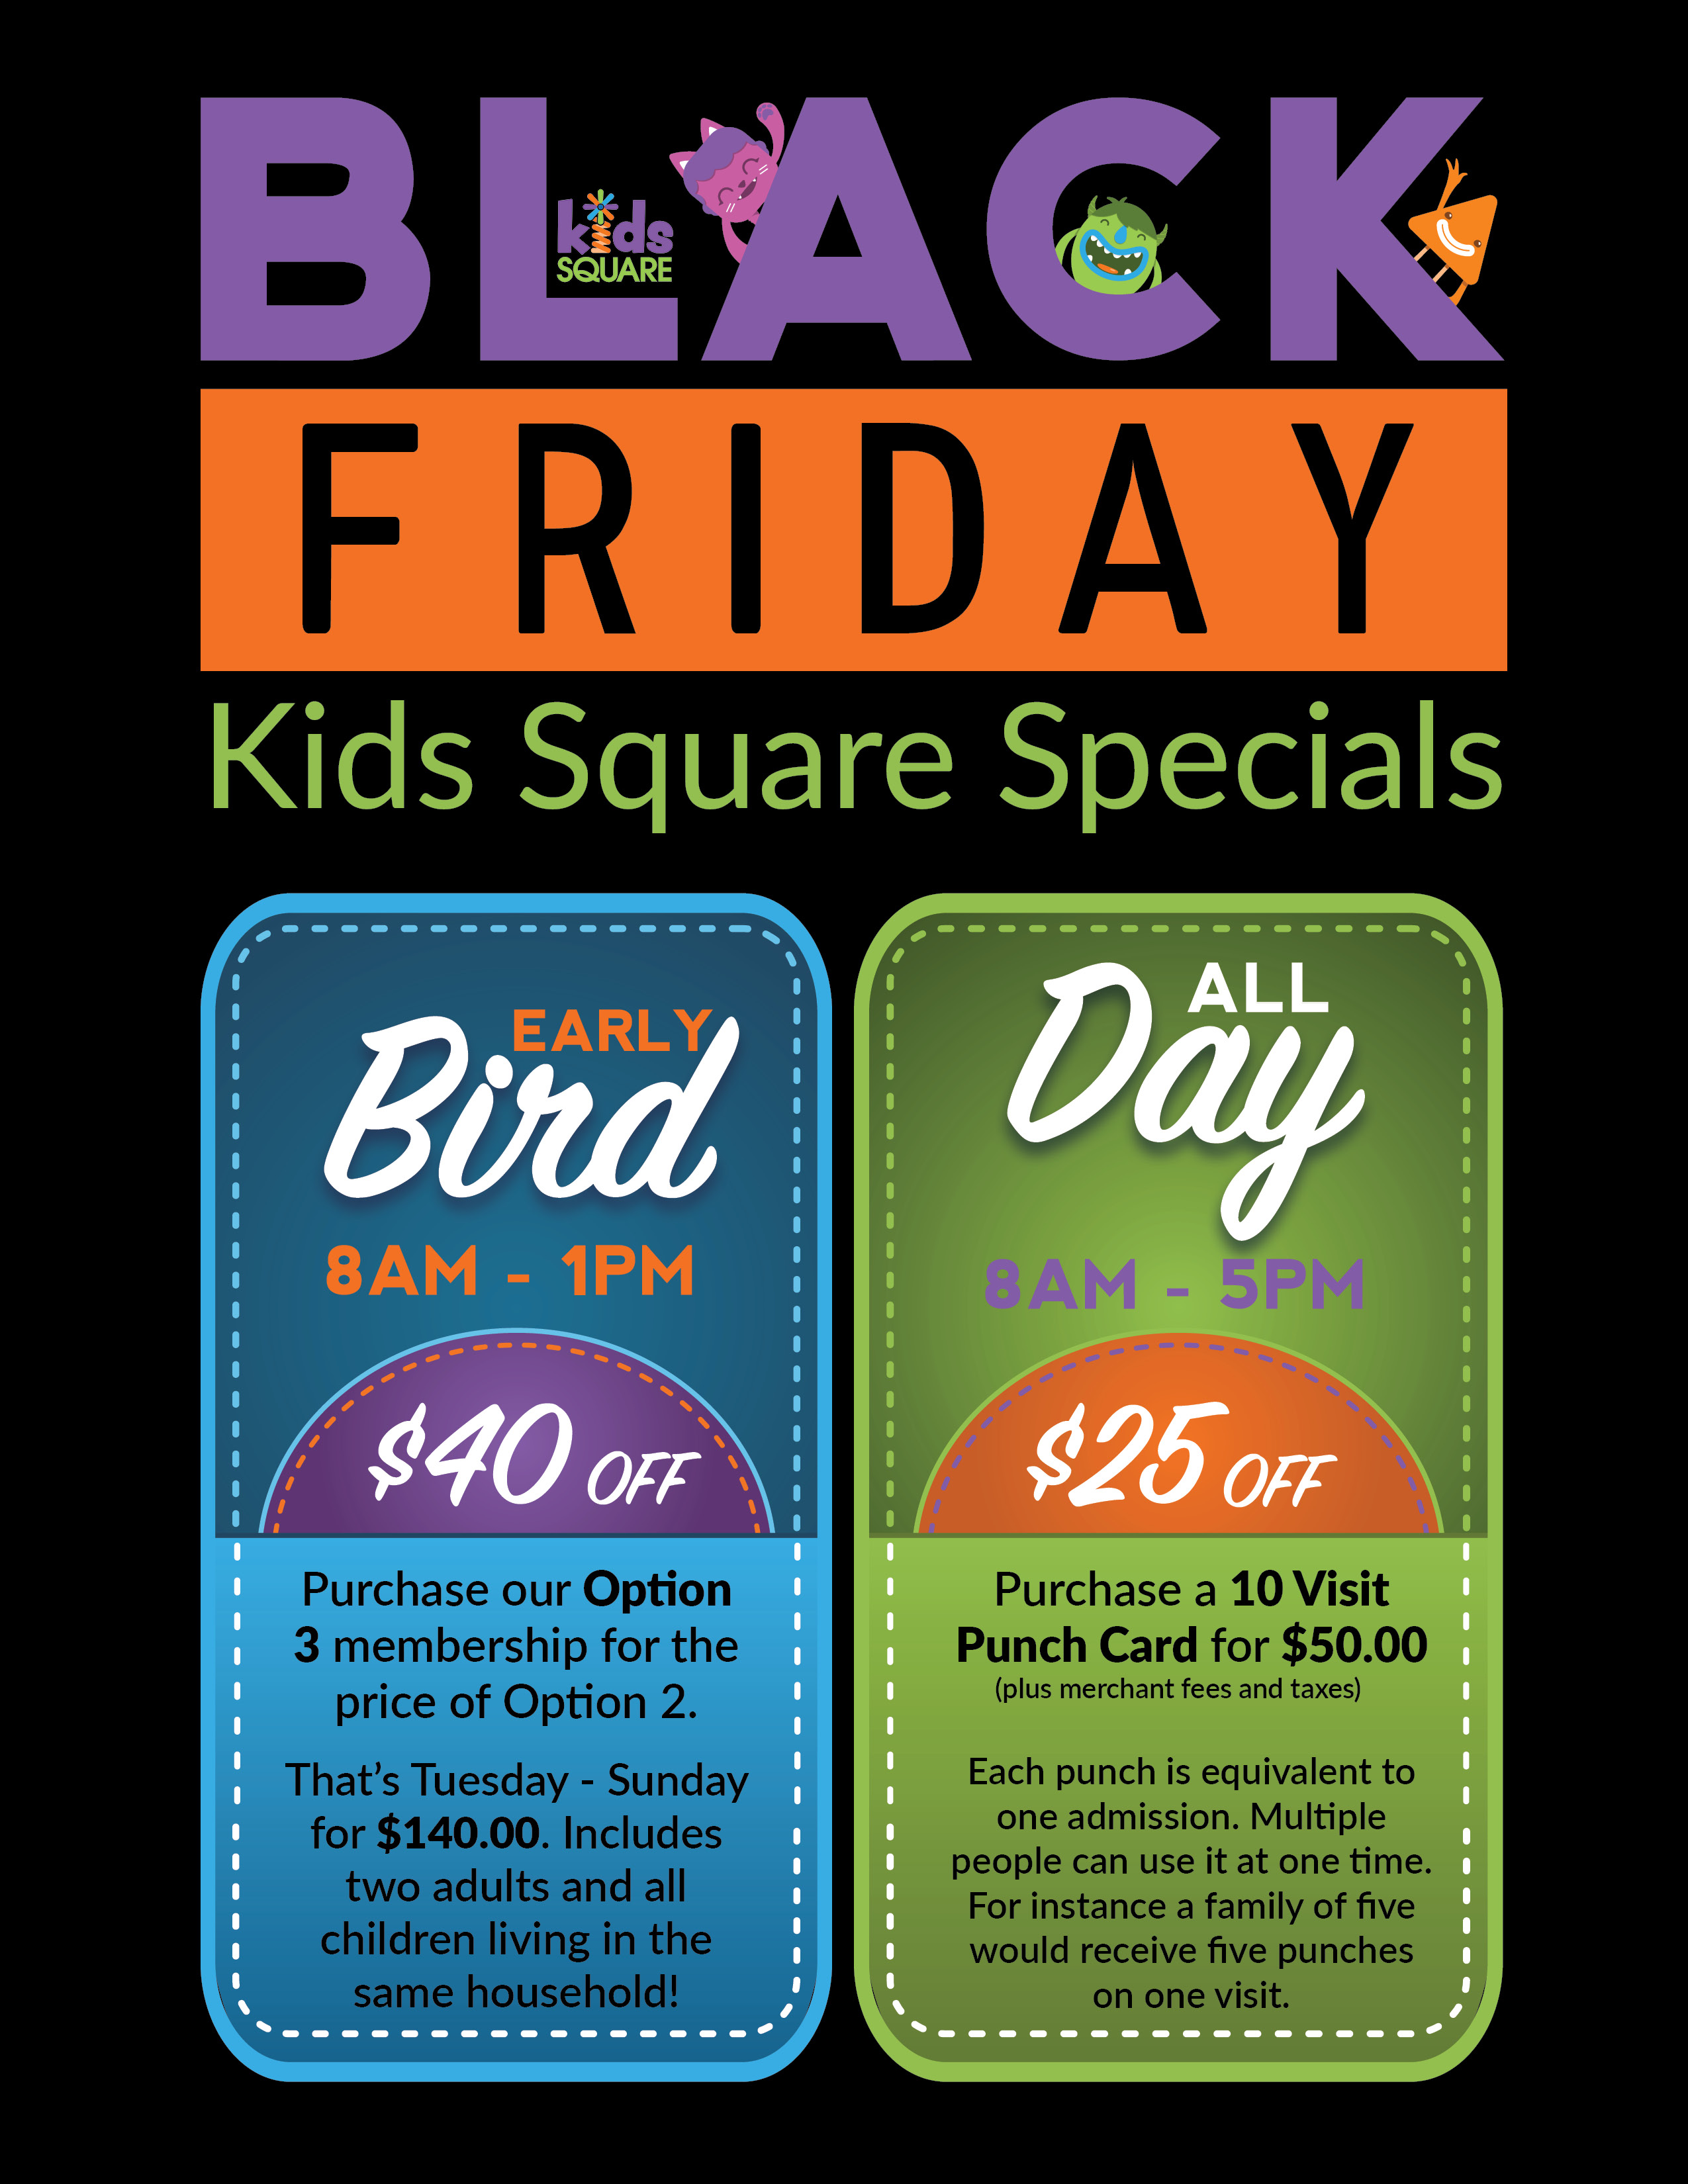 Black Friday Kids Square